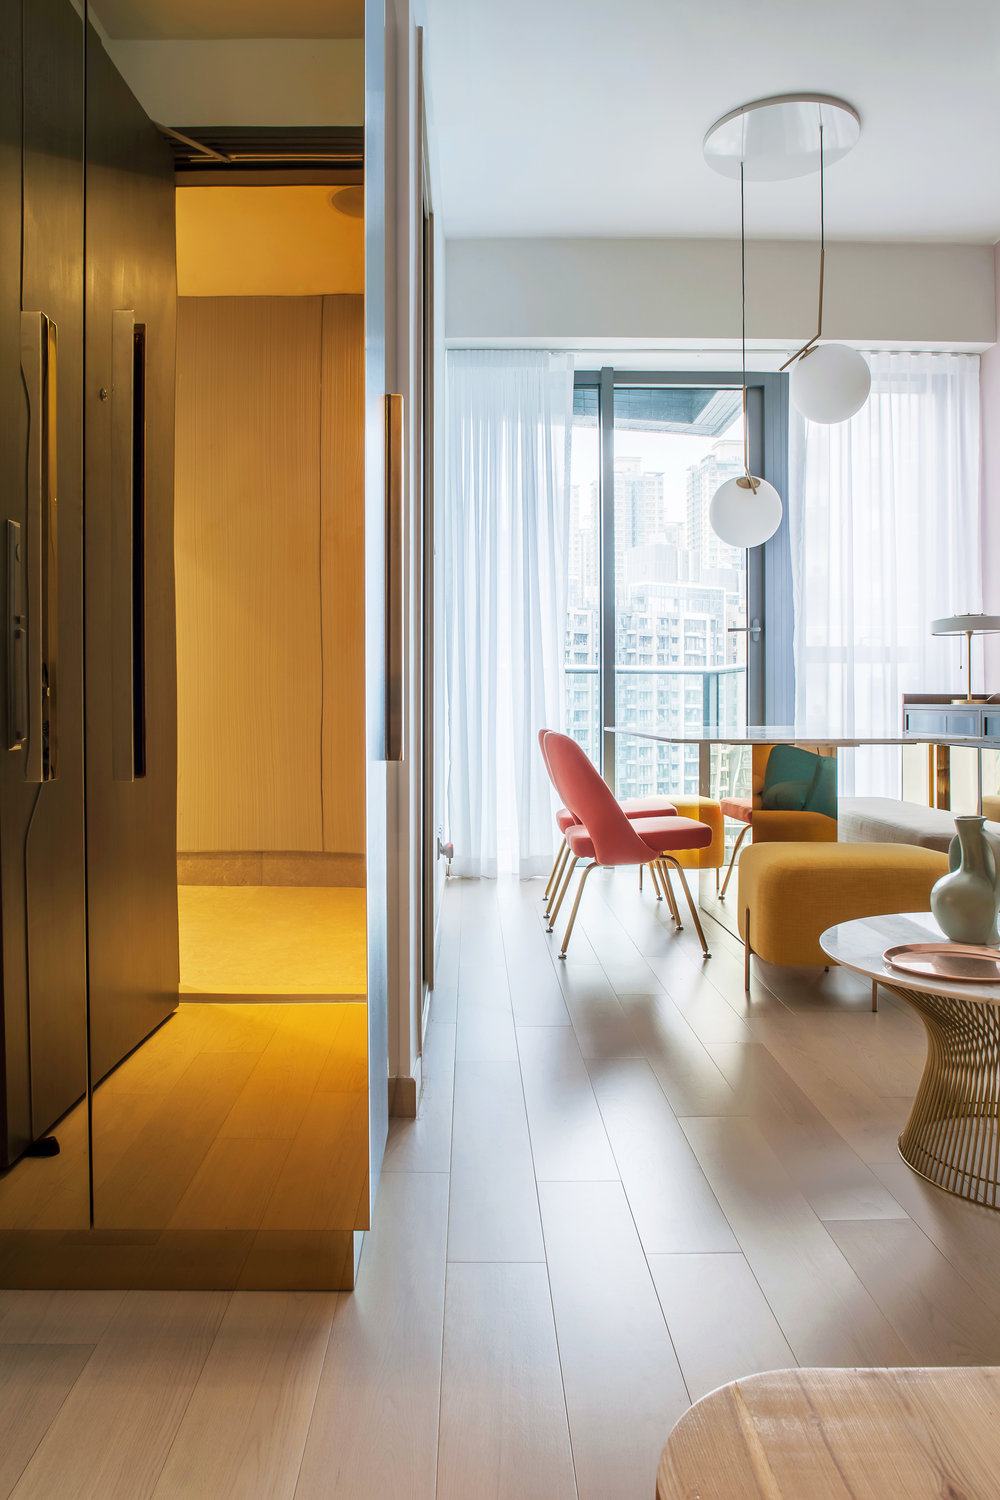 U201cFrom Walls To Furniture To Small Accessories, The Palette Of The Apartment  Is A Juxtaposition Of Colours And Textures,u201d Write The Designers.